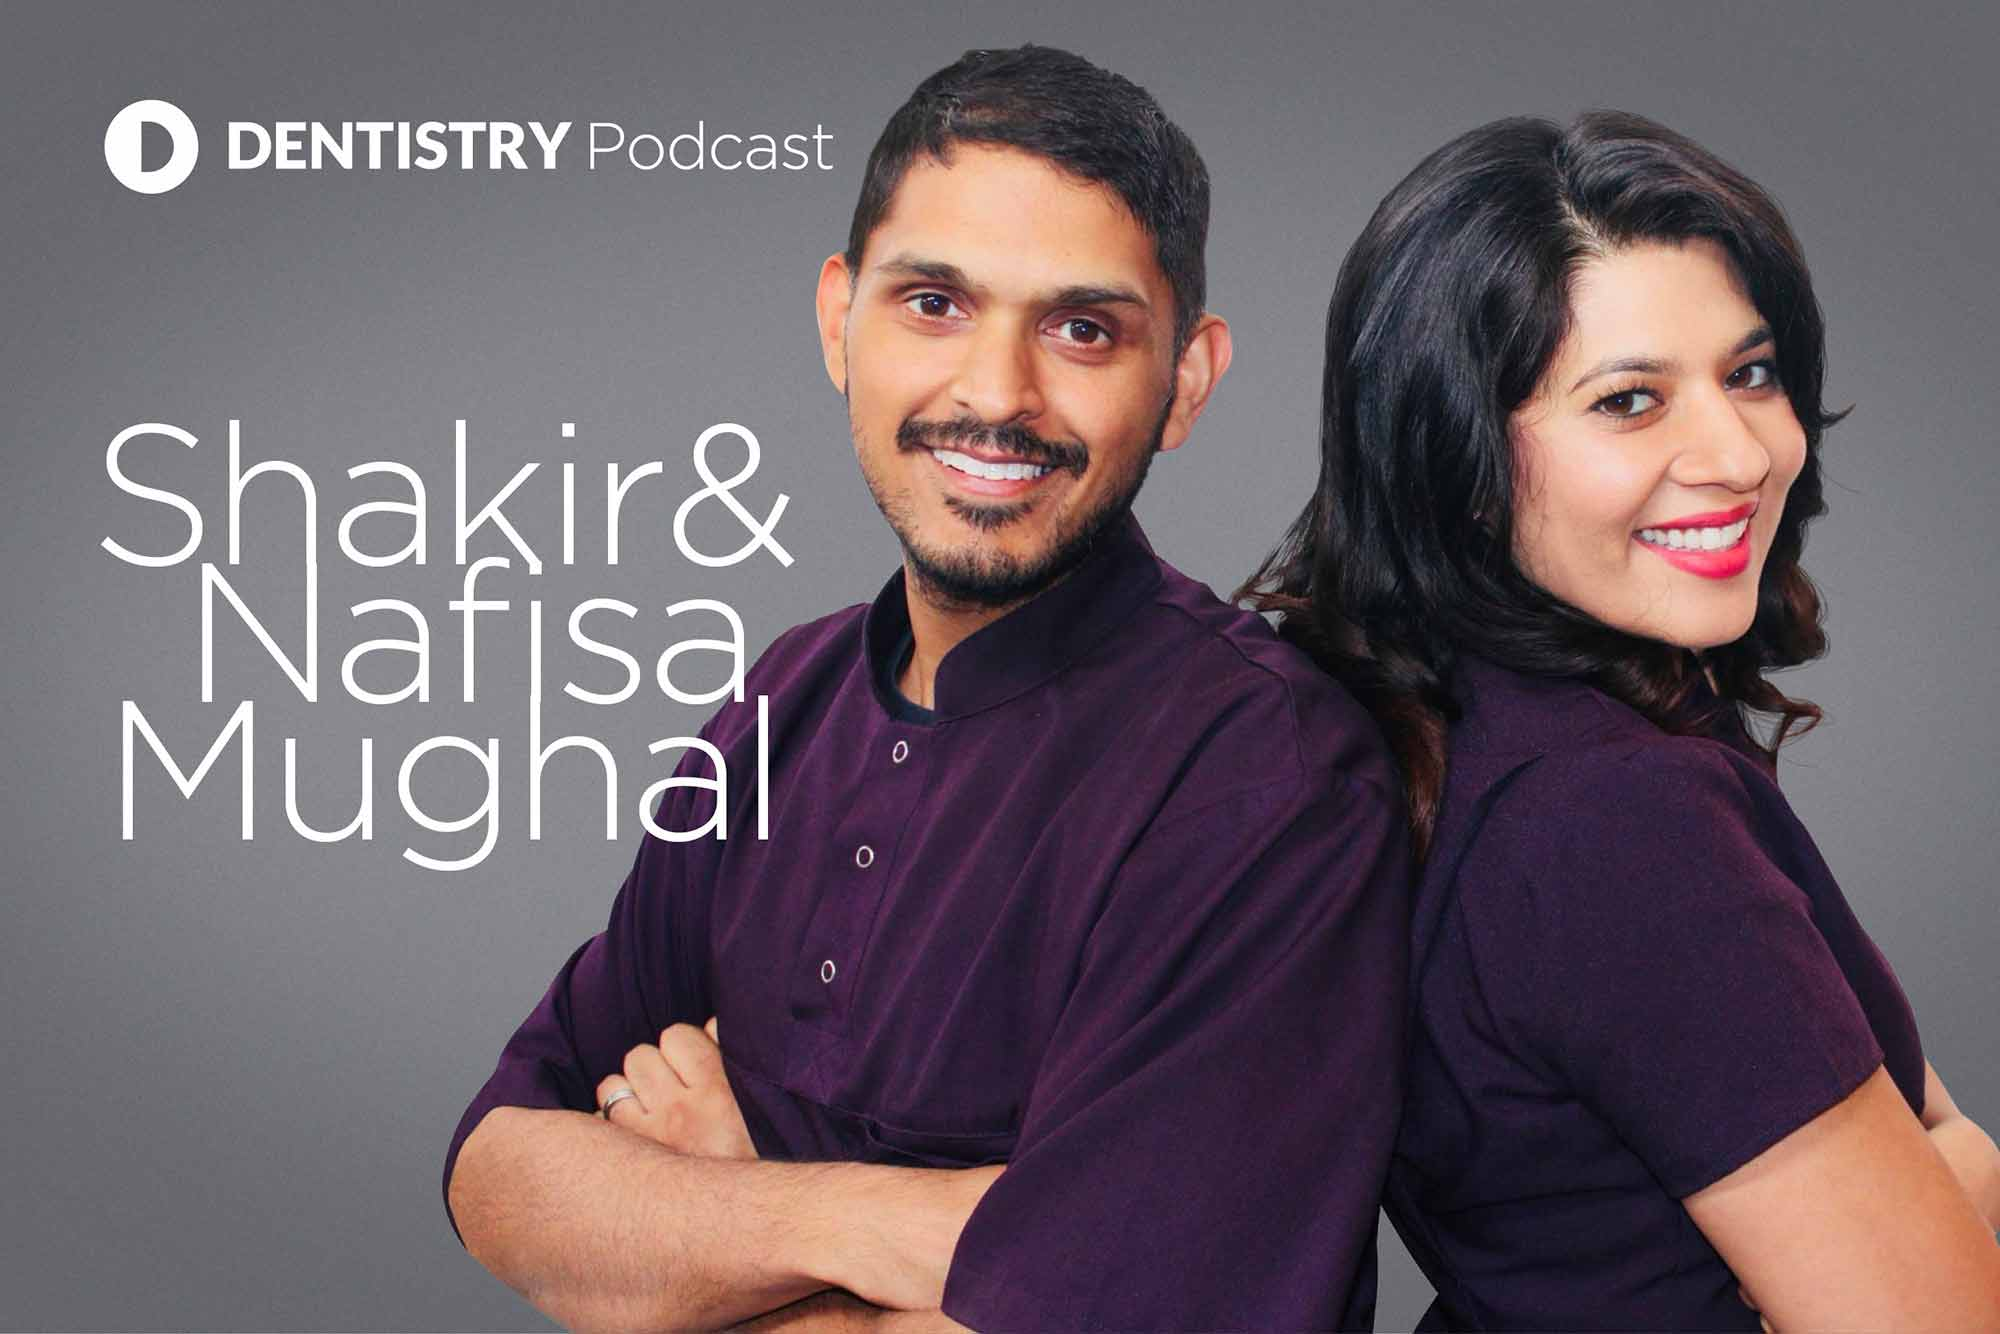 We are joined by Shakir and Nafisa Mughal to talk about their eco-friendly business venture, Pure Earth Essentials